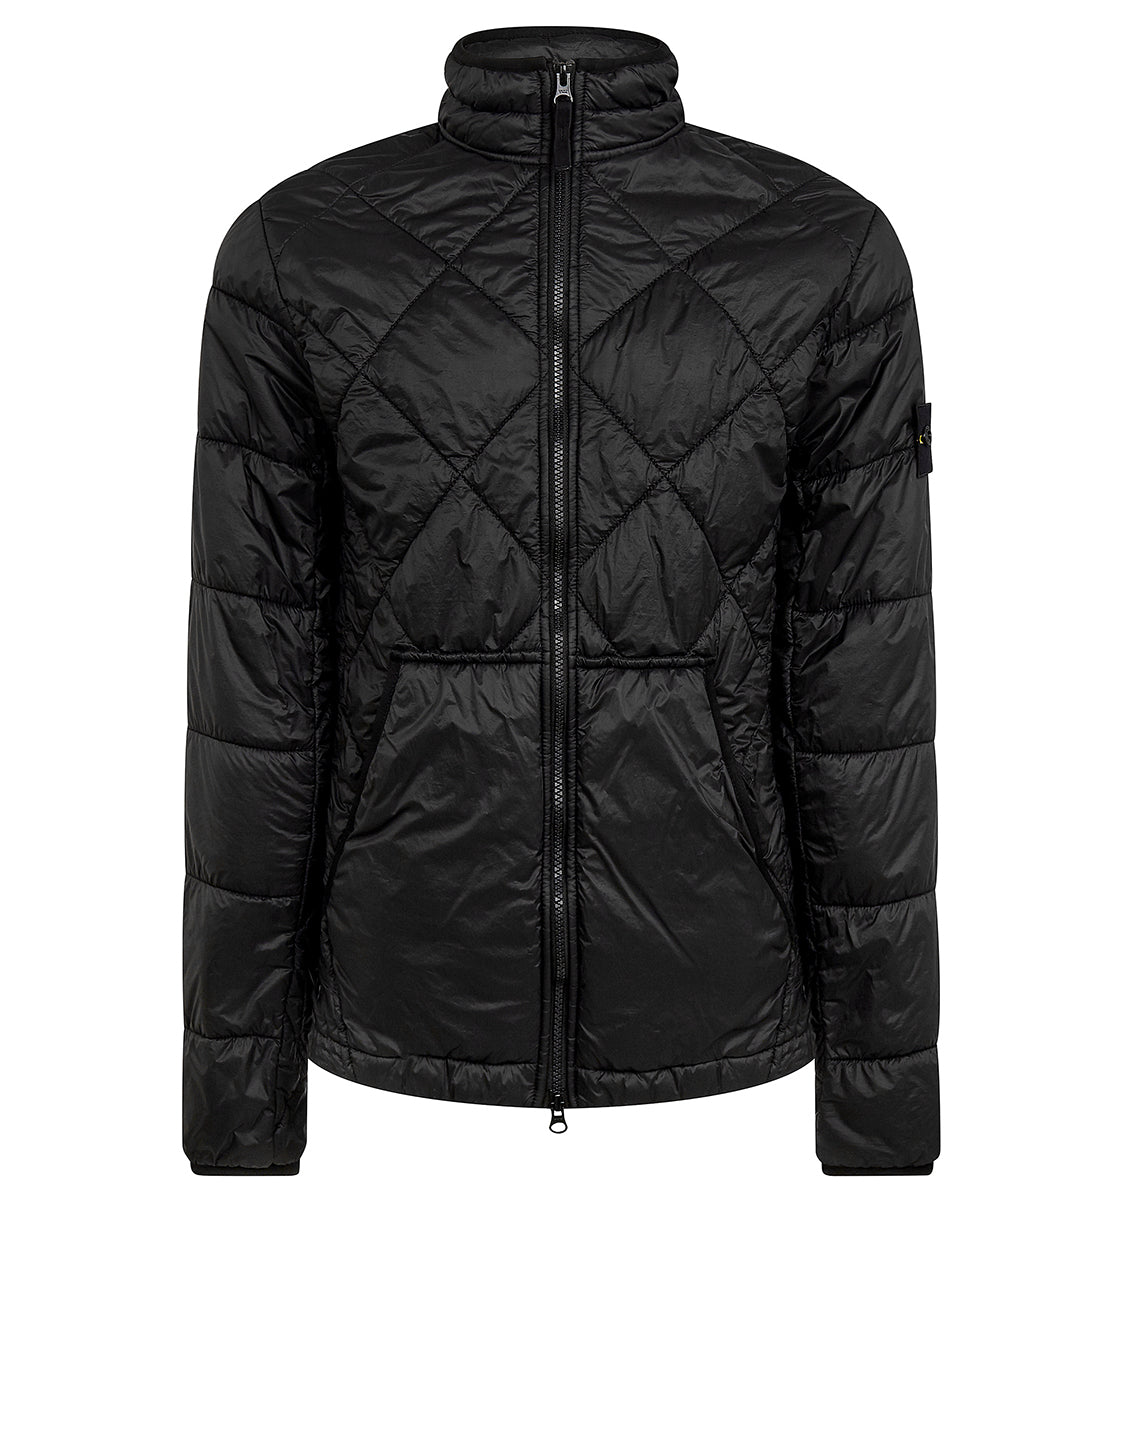 40424 GARMENT DYED QUILTED MICRO YARN Jacket in Black